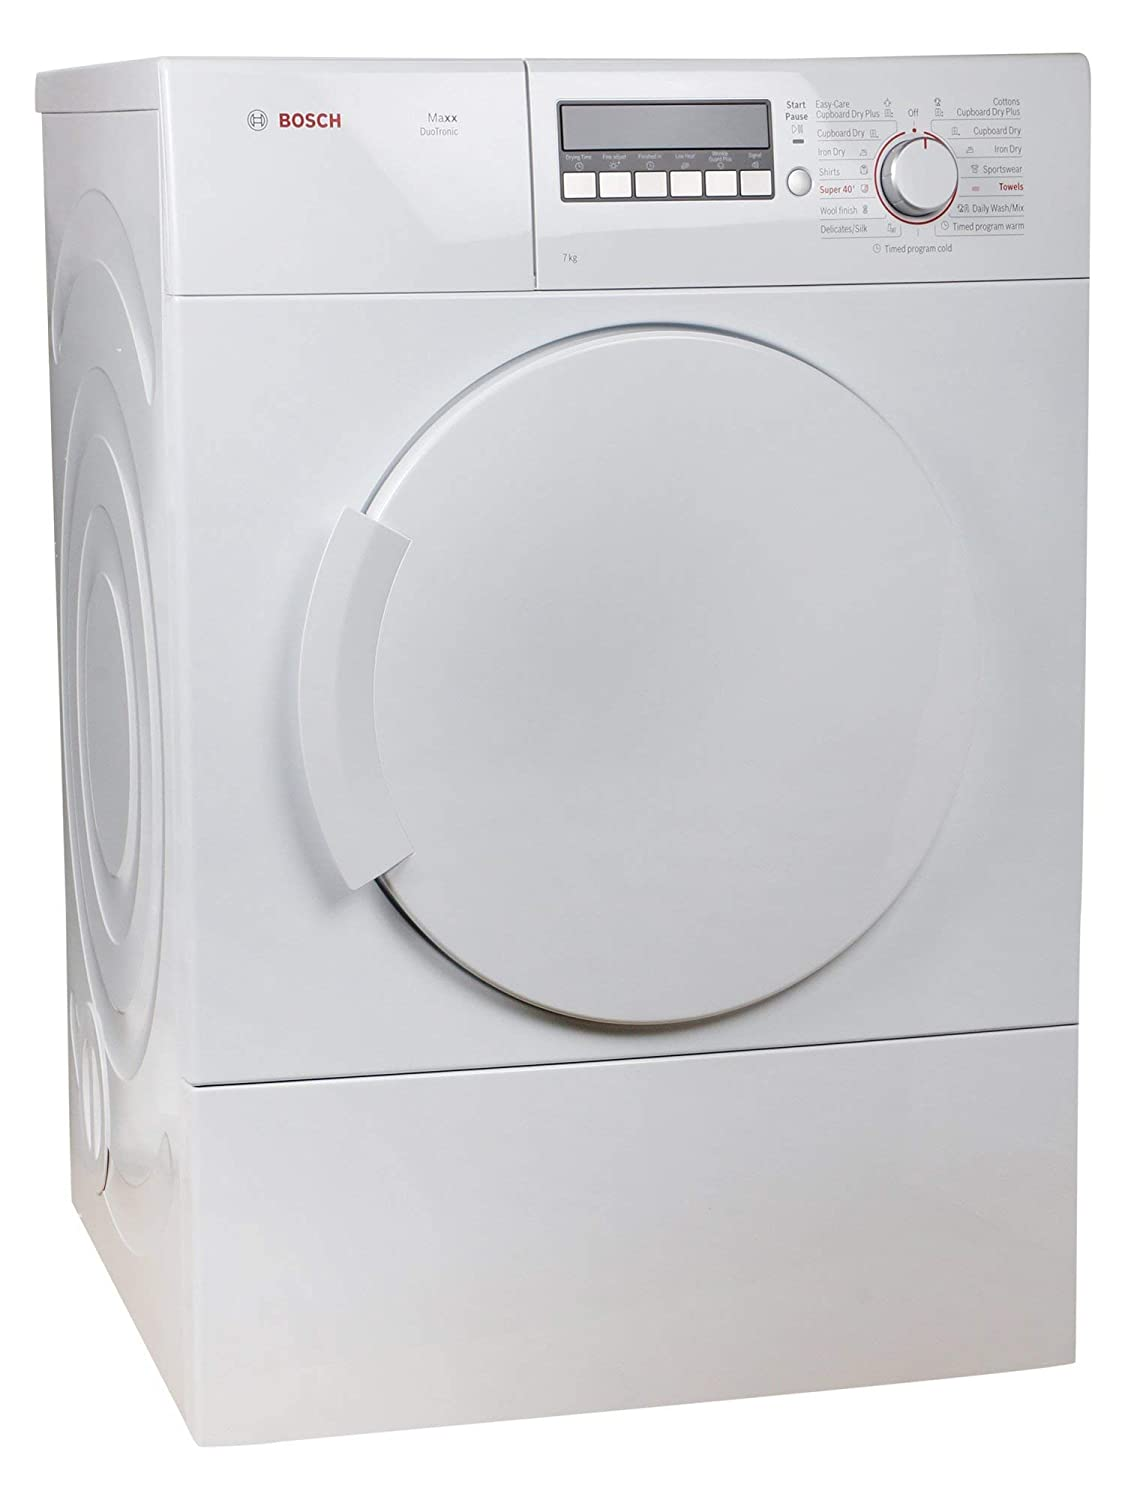 Bosch 7 Kg Dryer Wta76200in White Home Kitchen Clothes Plug Wiring Along With Page 4 Of Indesit